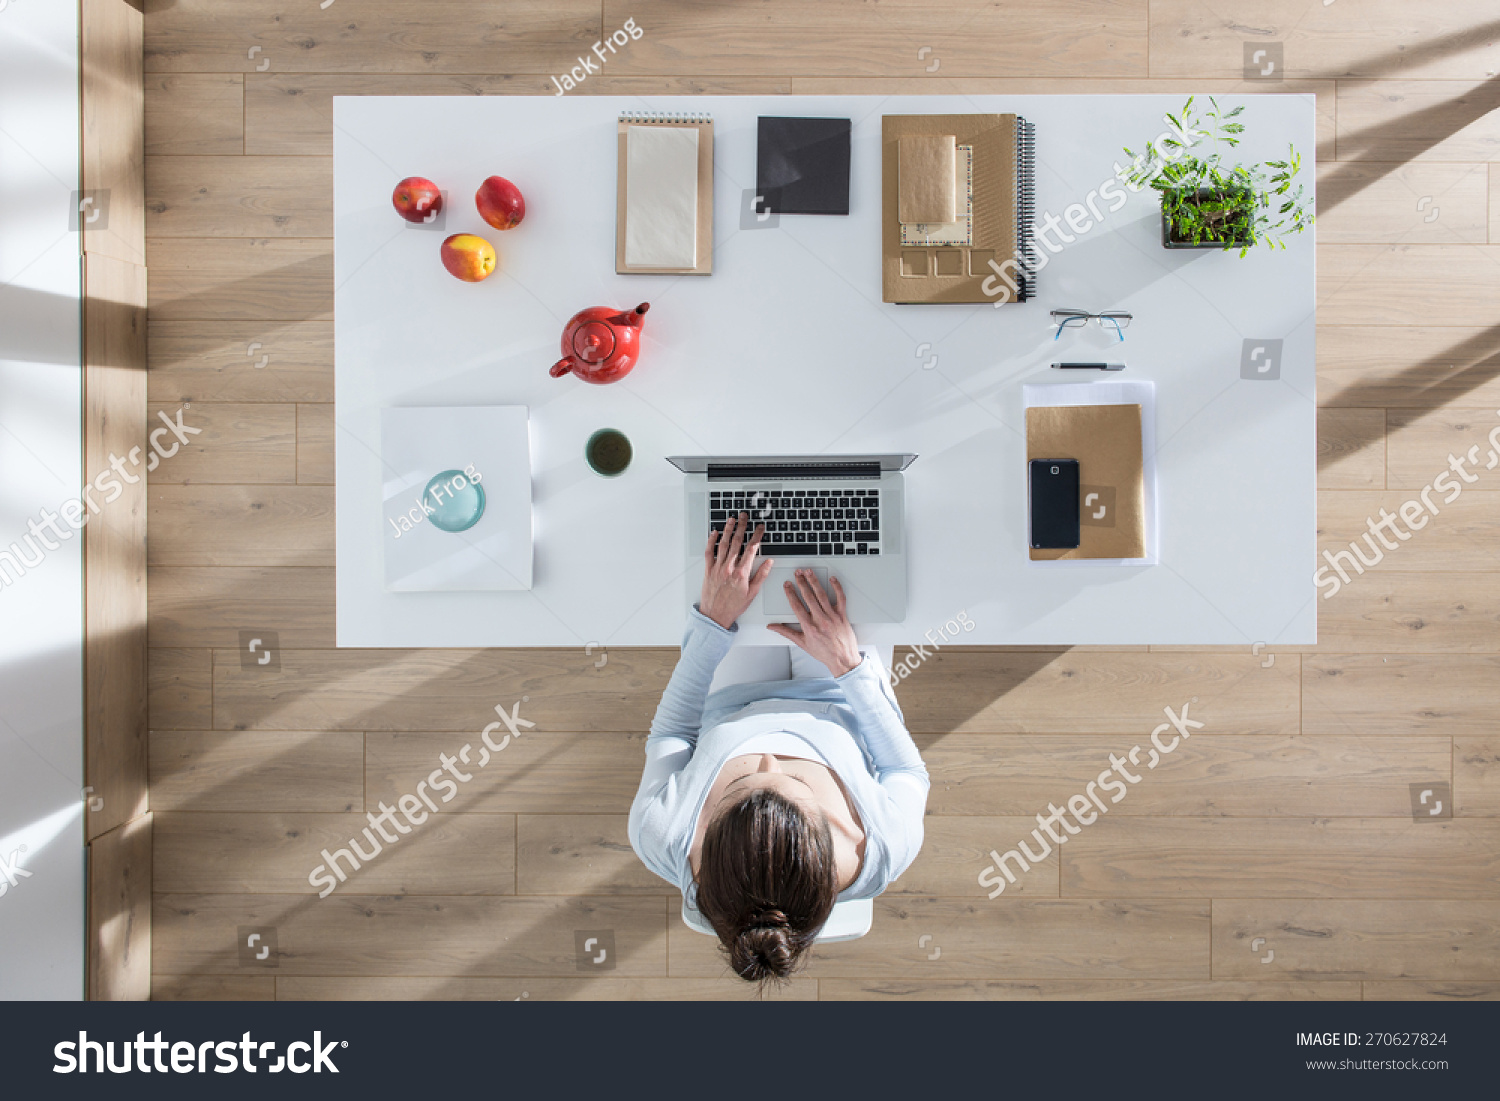 Top View Of Desk